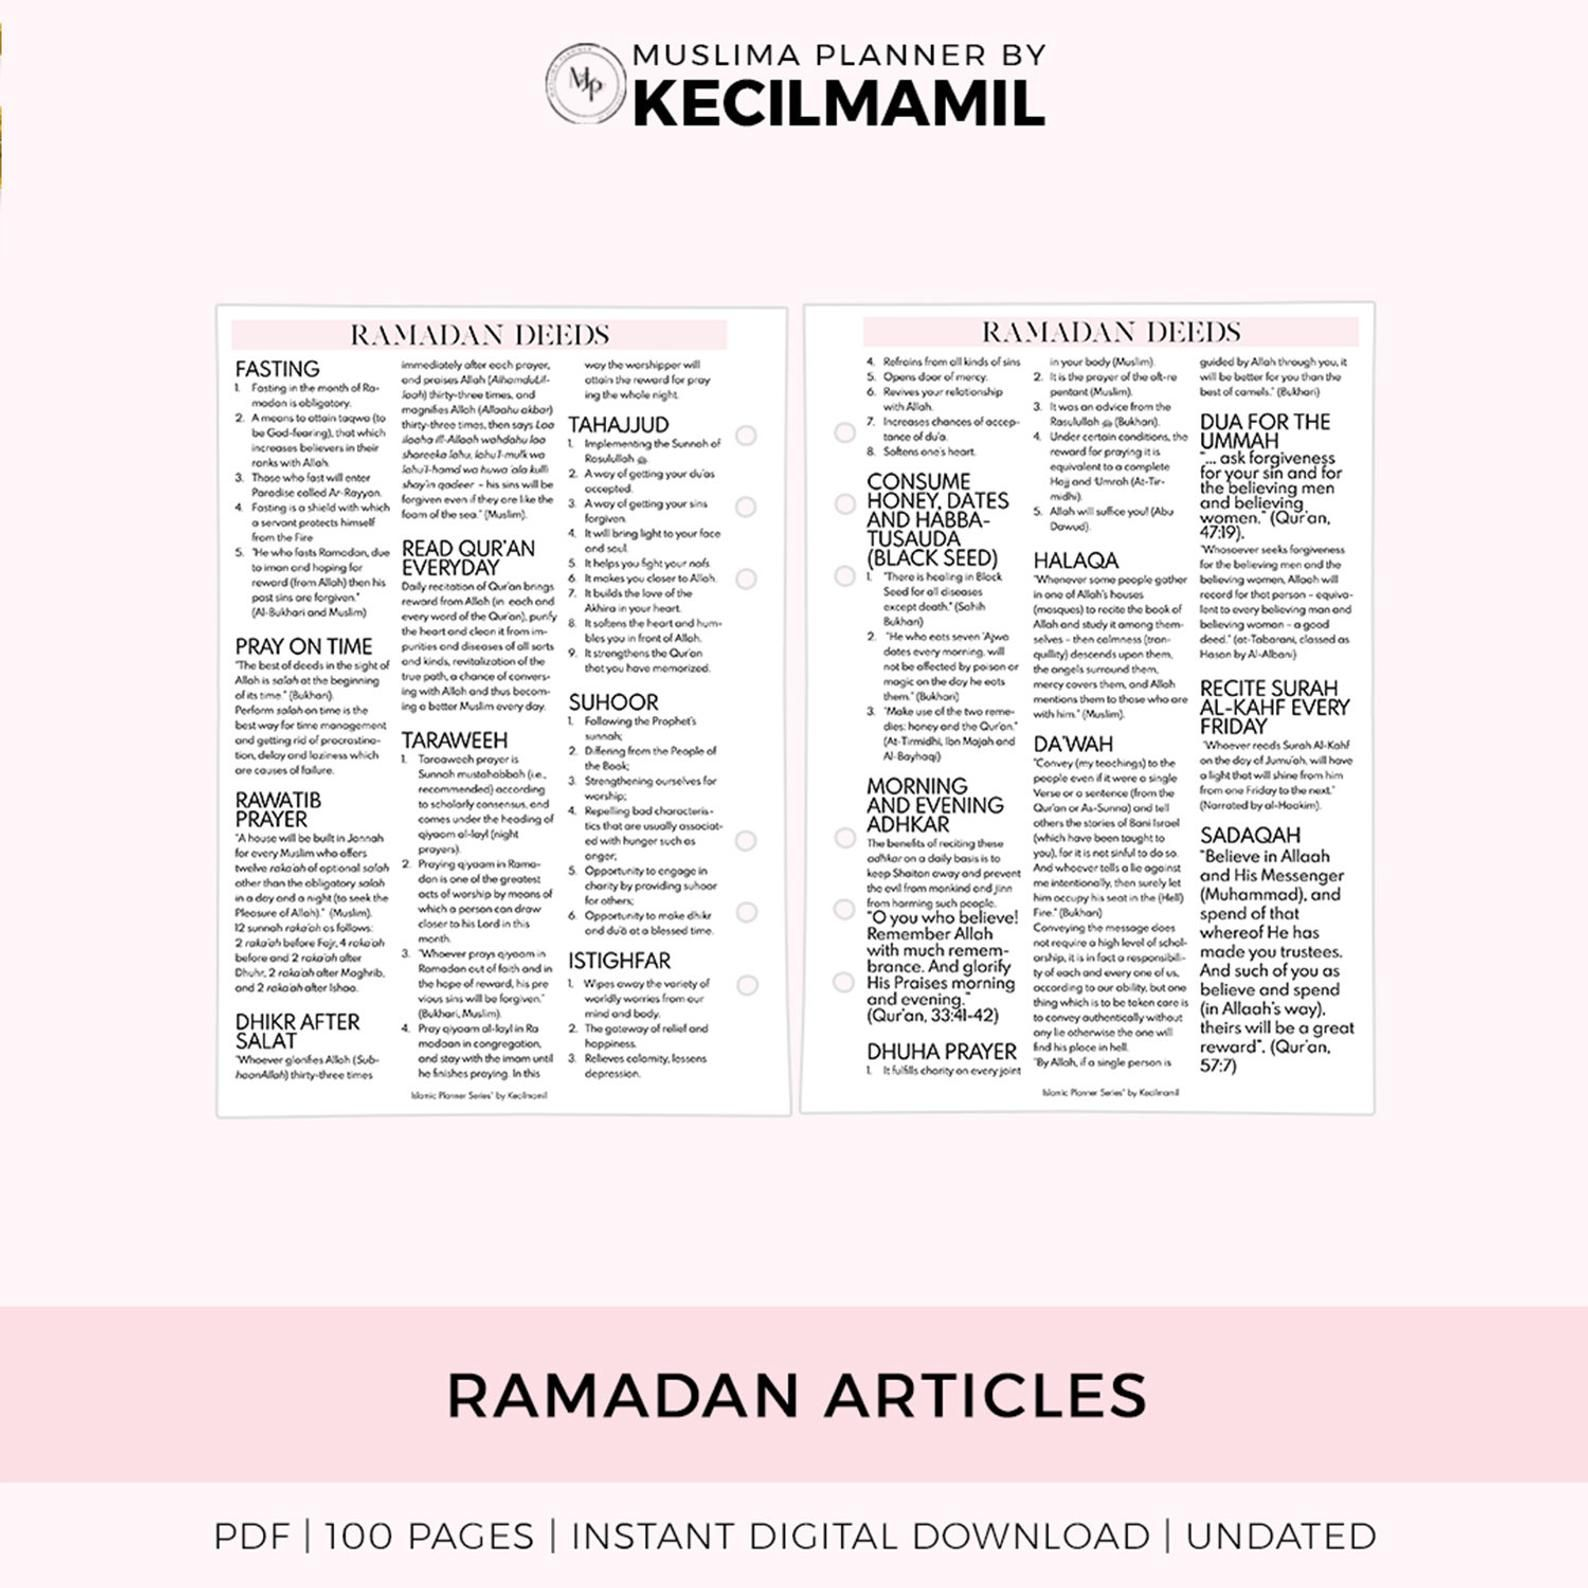 Ramadan Planner 2019 By Kecilmamil Printable Instant Download Pdf